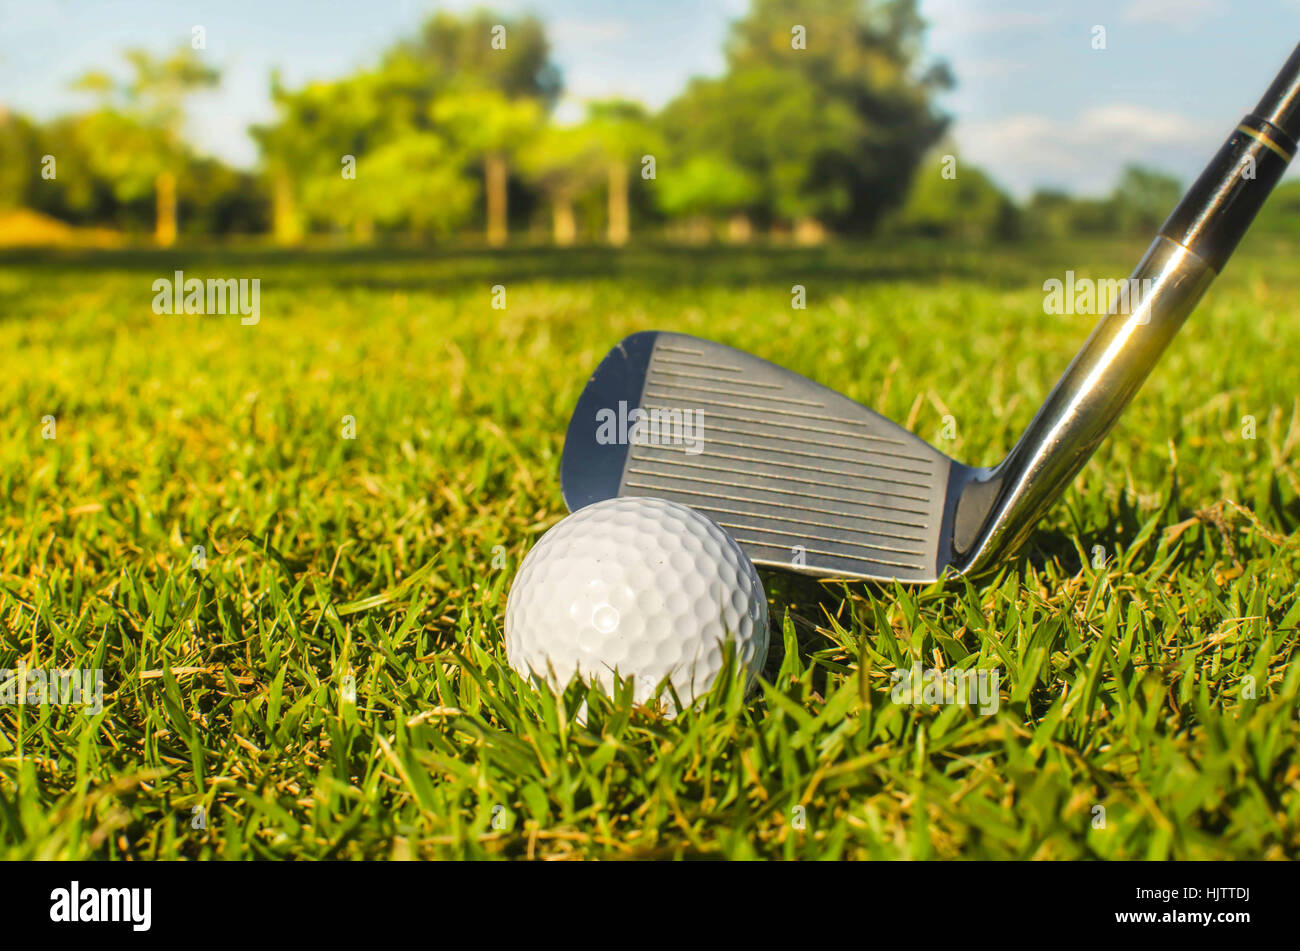 Golf club and ball in grass - Stock Image